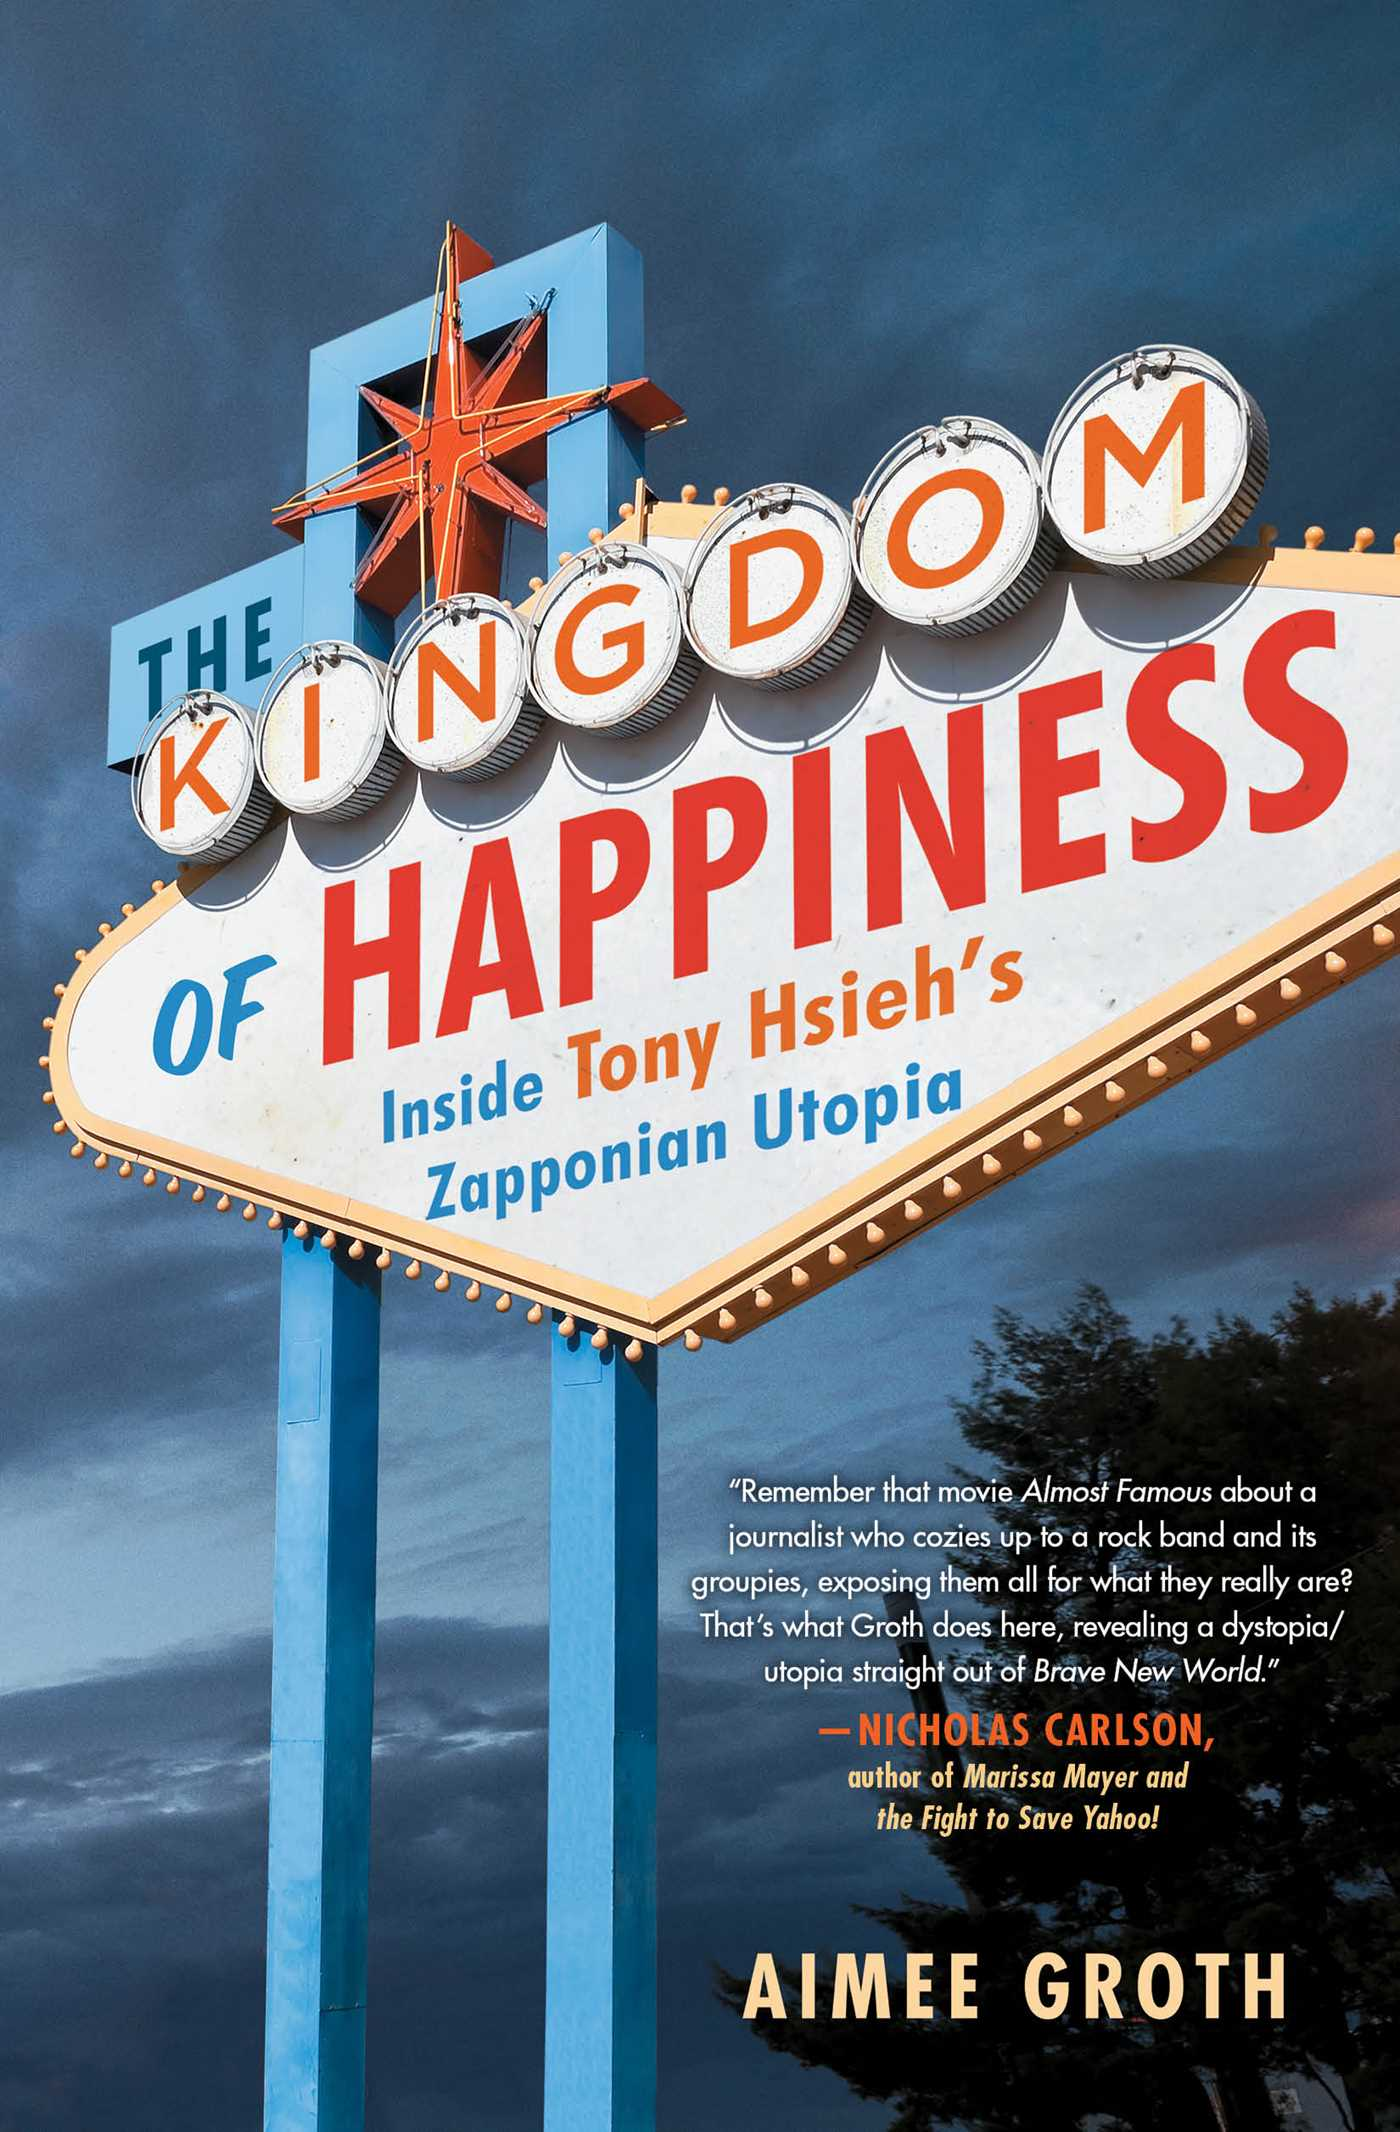 The kingdom of happiness 9781501129919 hr